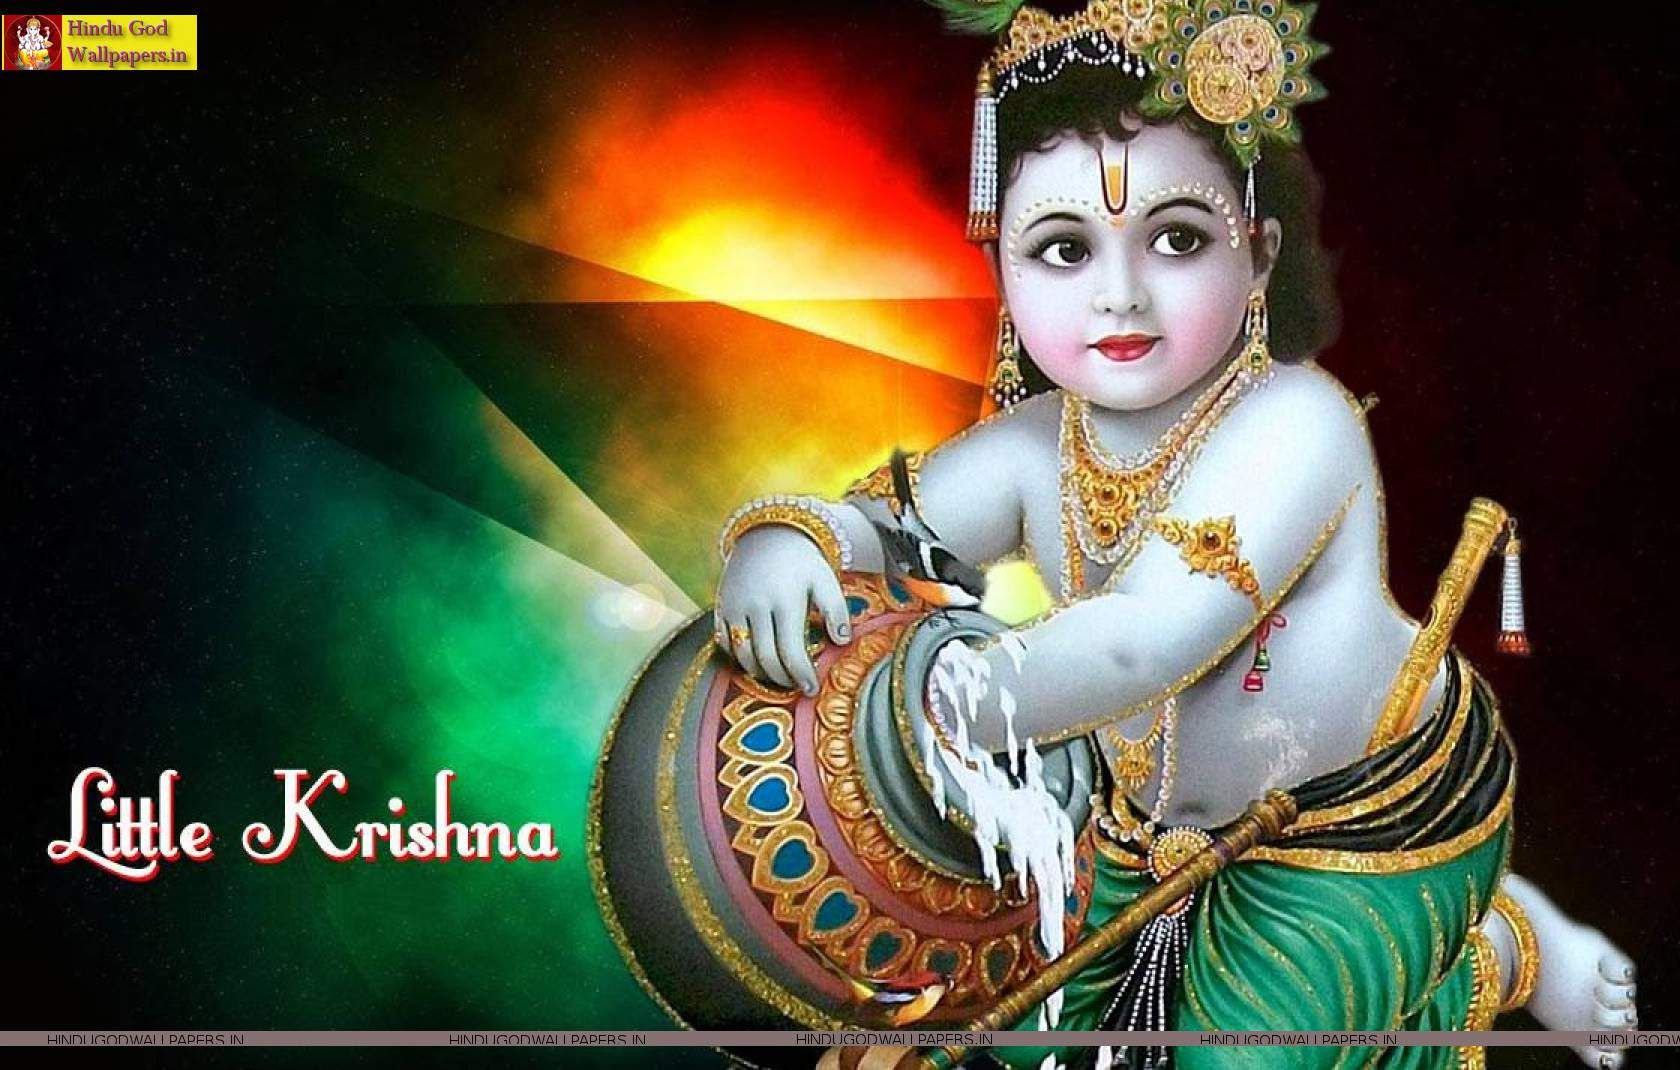 Best latest collection of lord shri krishna images god krishna best latest collection of lord shri krishna images god krishna hare krishna photo gallery kristyandbryce Gallery